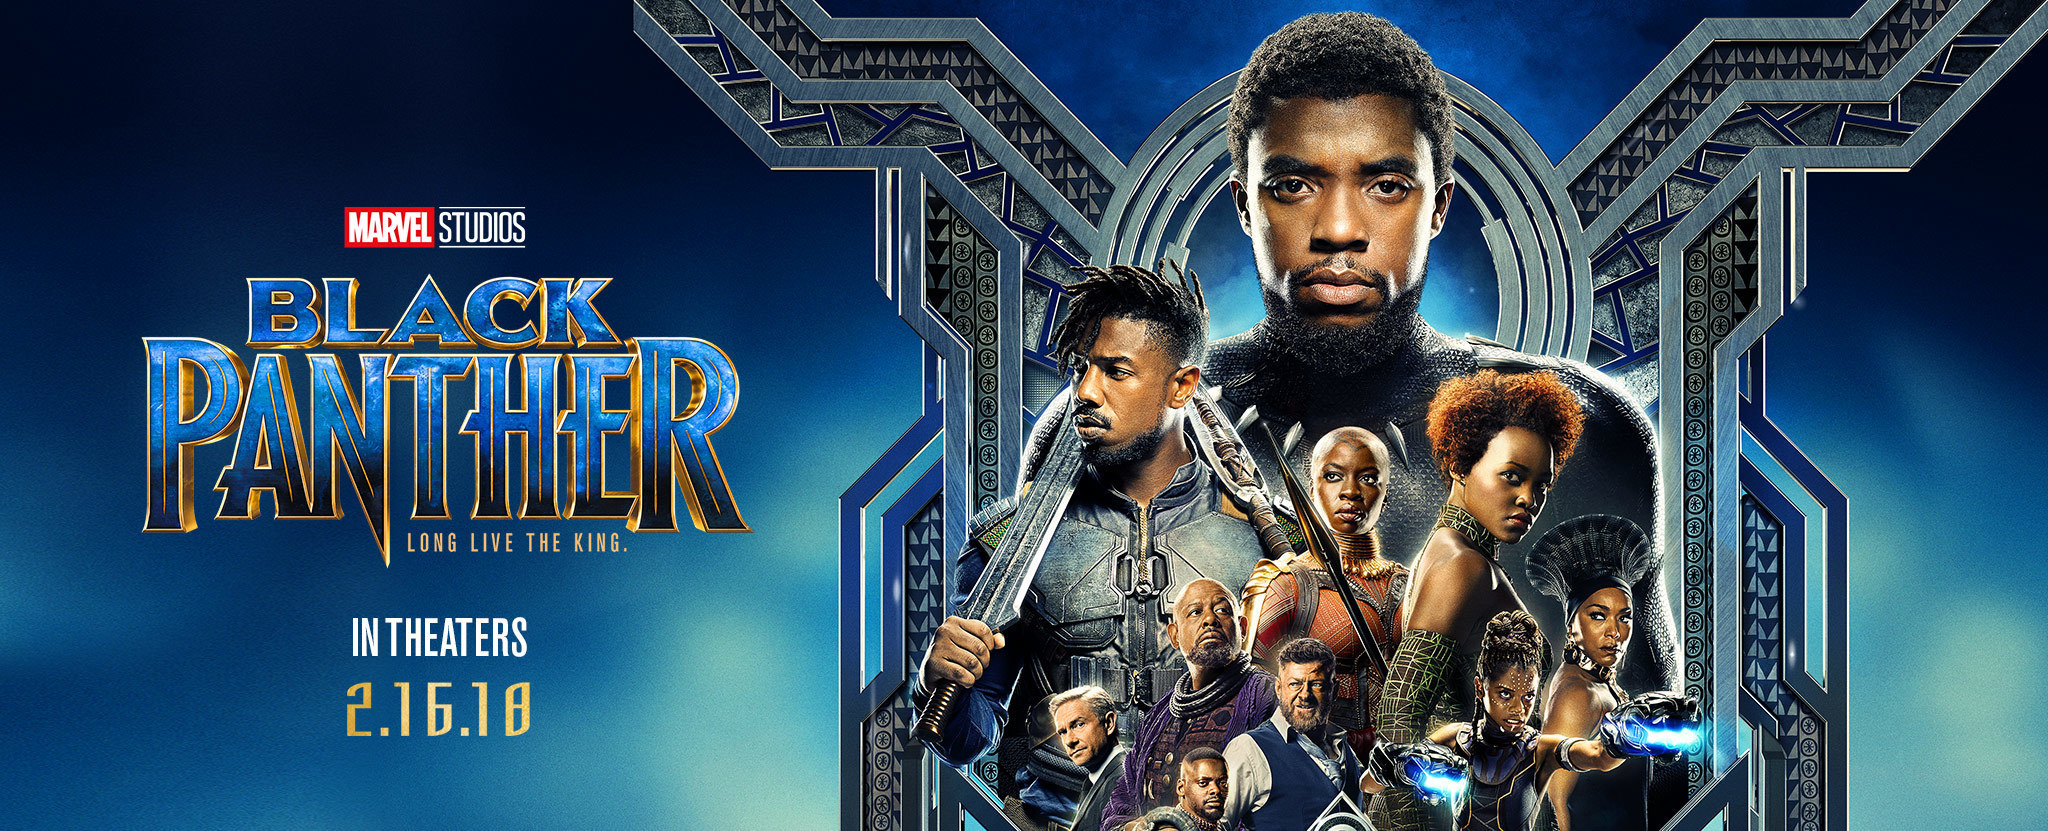 black panthers movie analysis Watch video 'black panther,' ryan coogler's eagerly awaited film based on the marvel comics character, stars chadwick boseman, lupita.